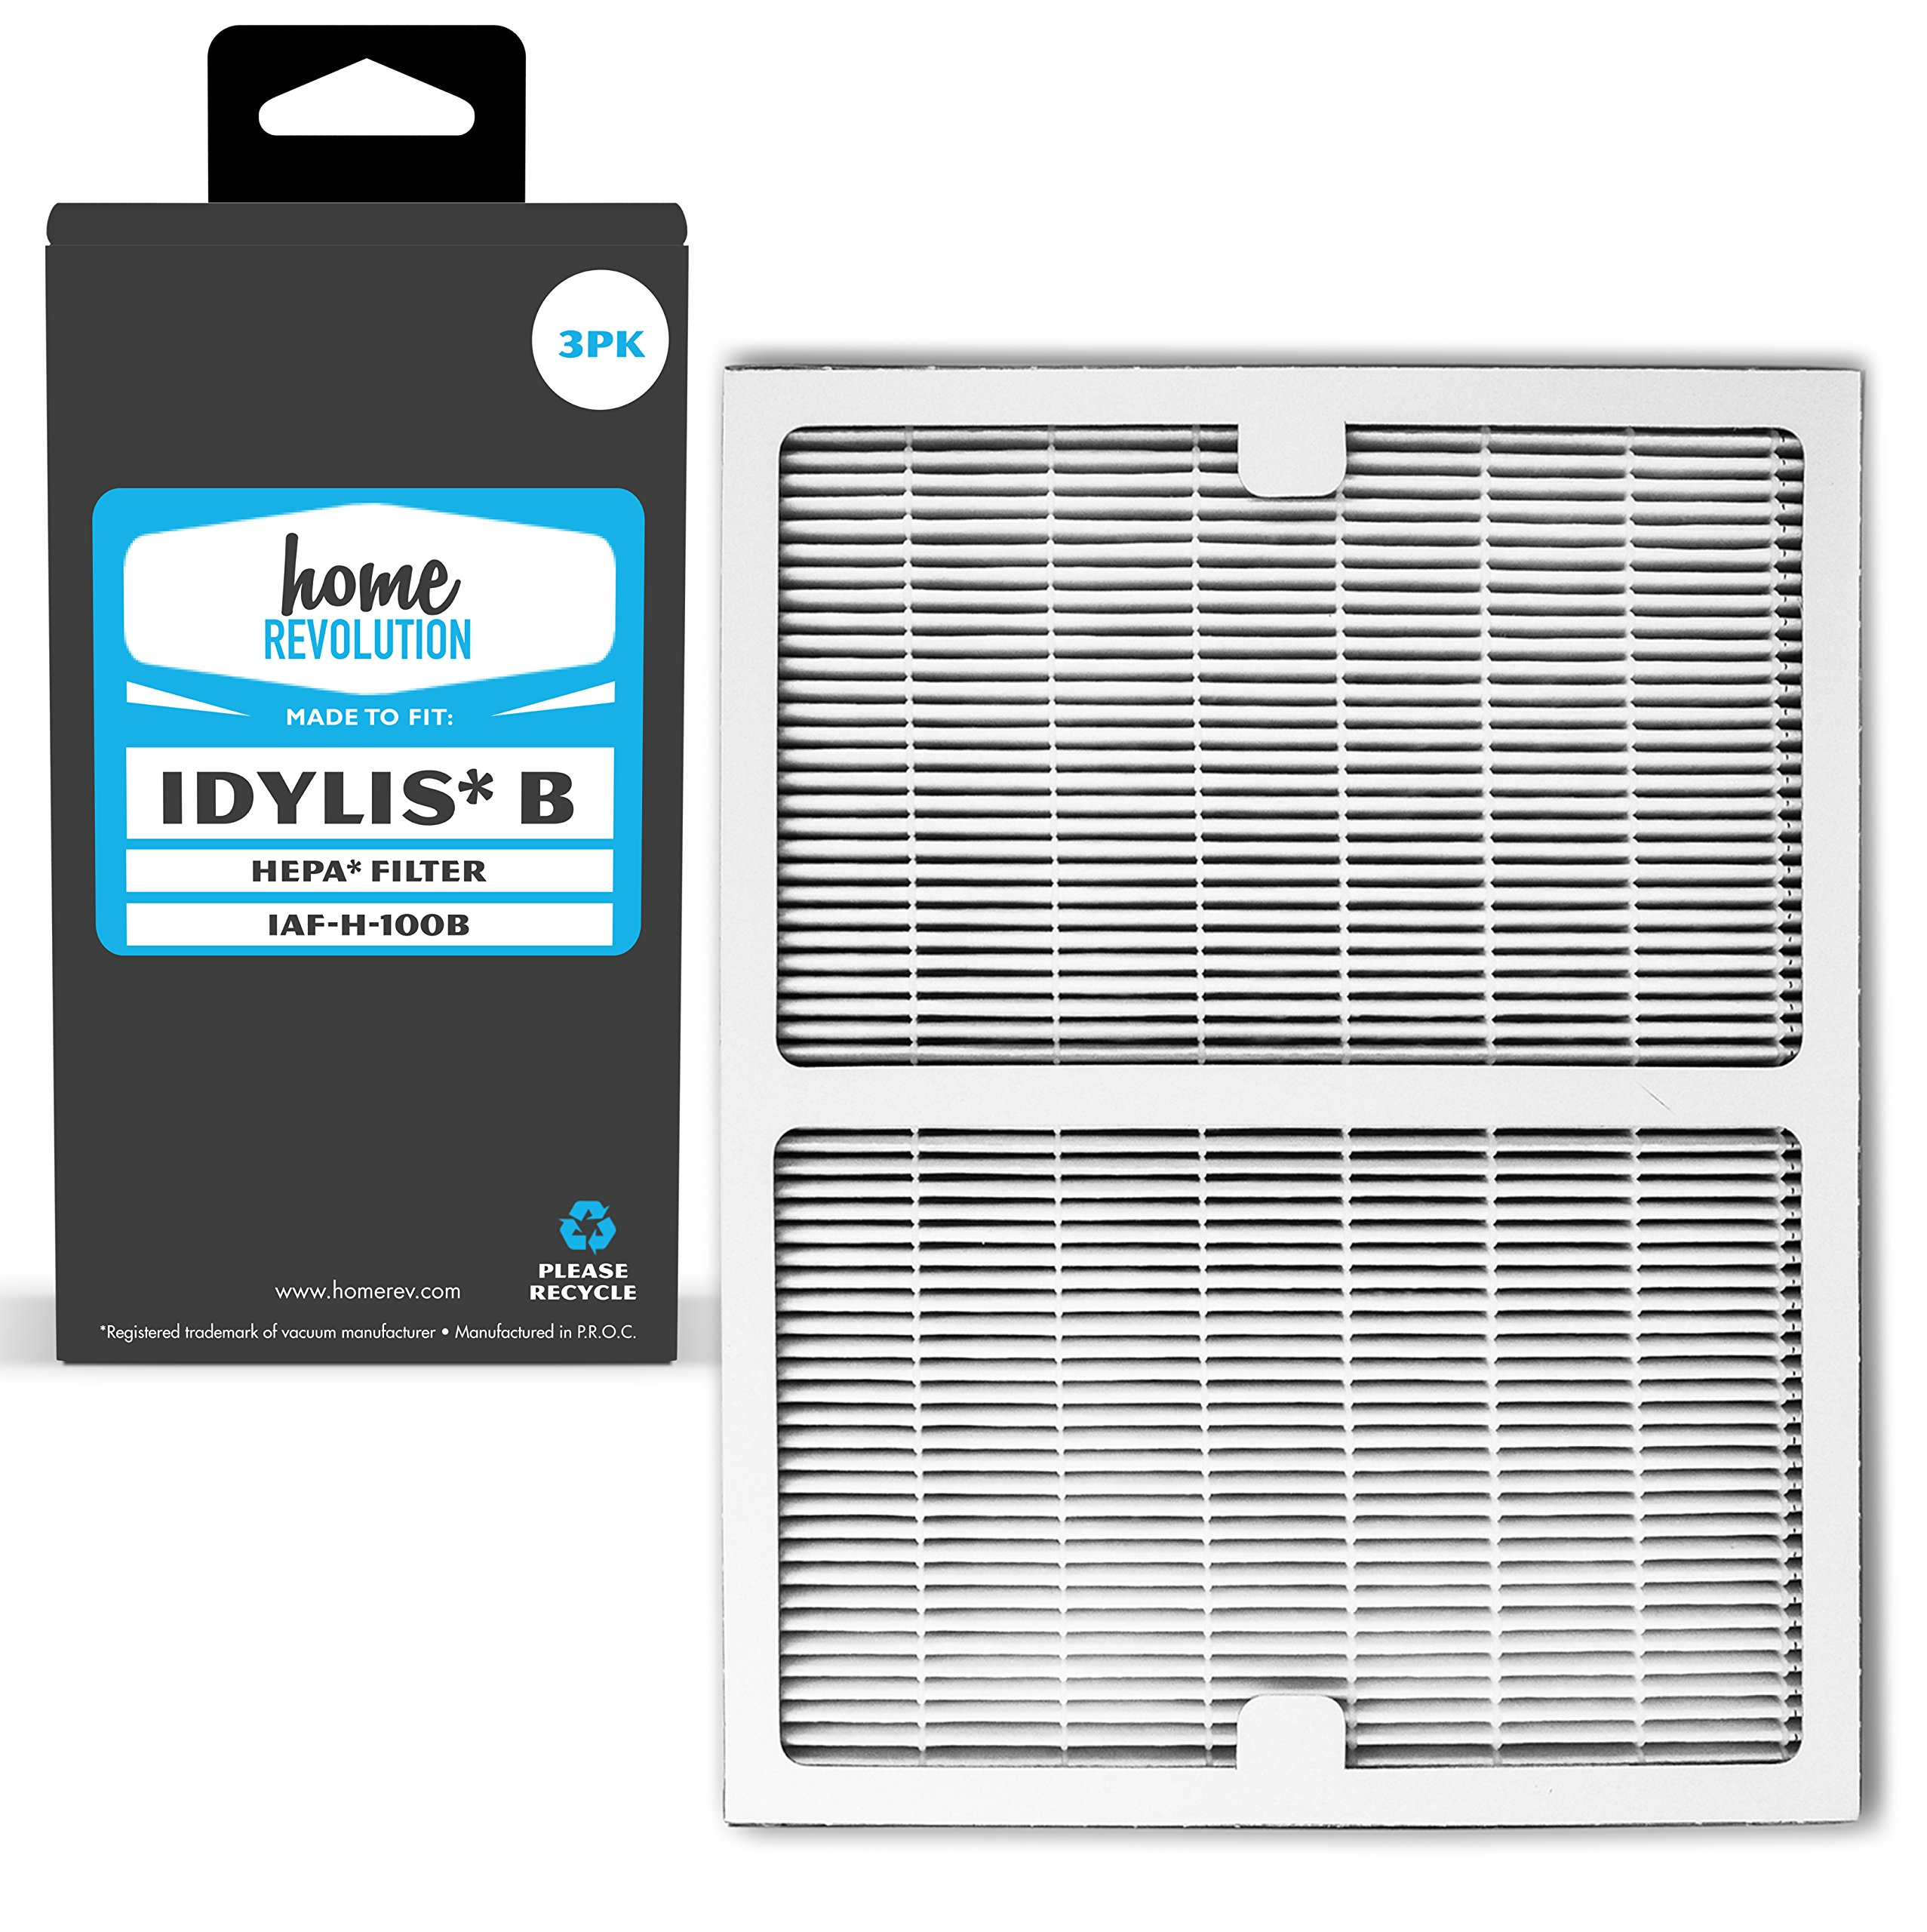 Home Revolution 3 Replacement HEPA Filters, Fits Idylis IAP-10-125 and IAP-10-150 Air Purifiers and Type B Part IAF-H-100B